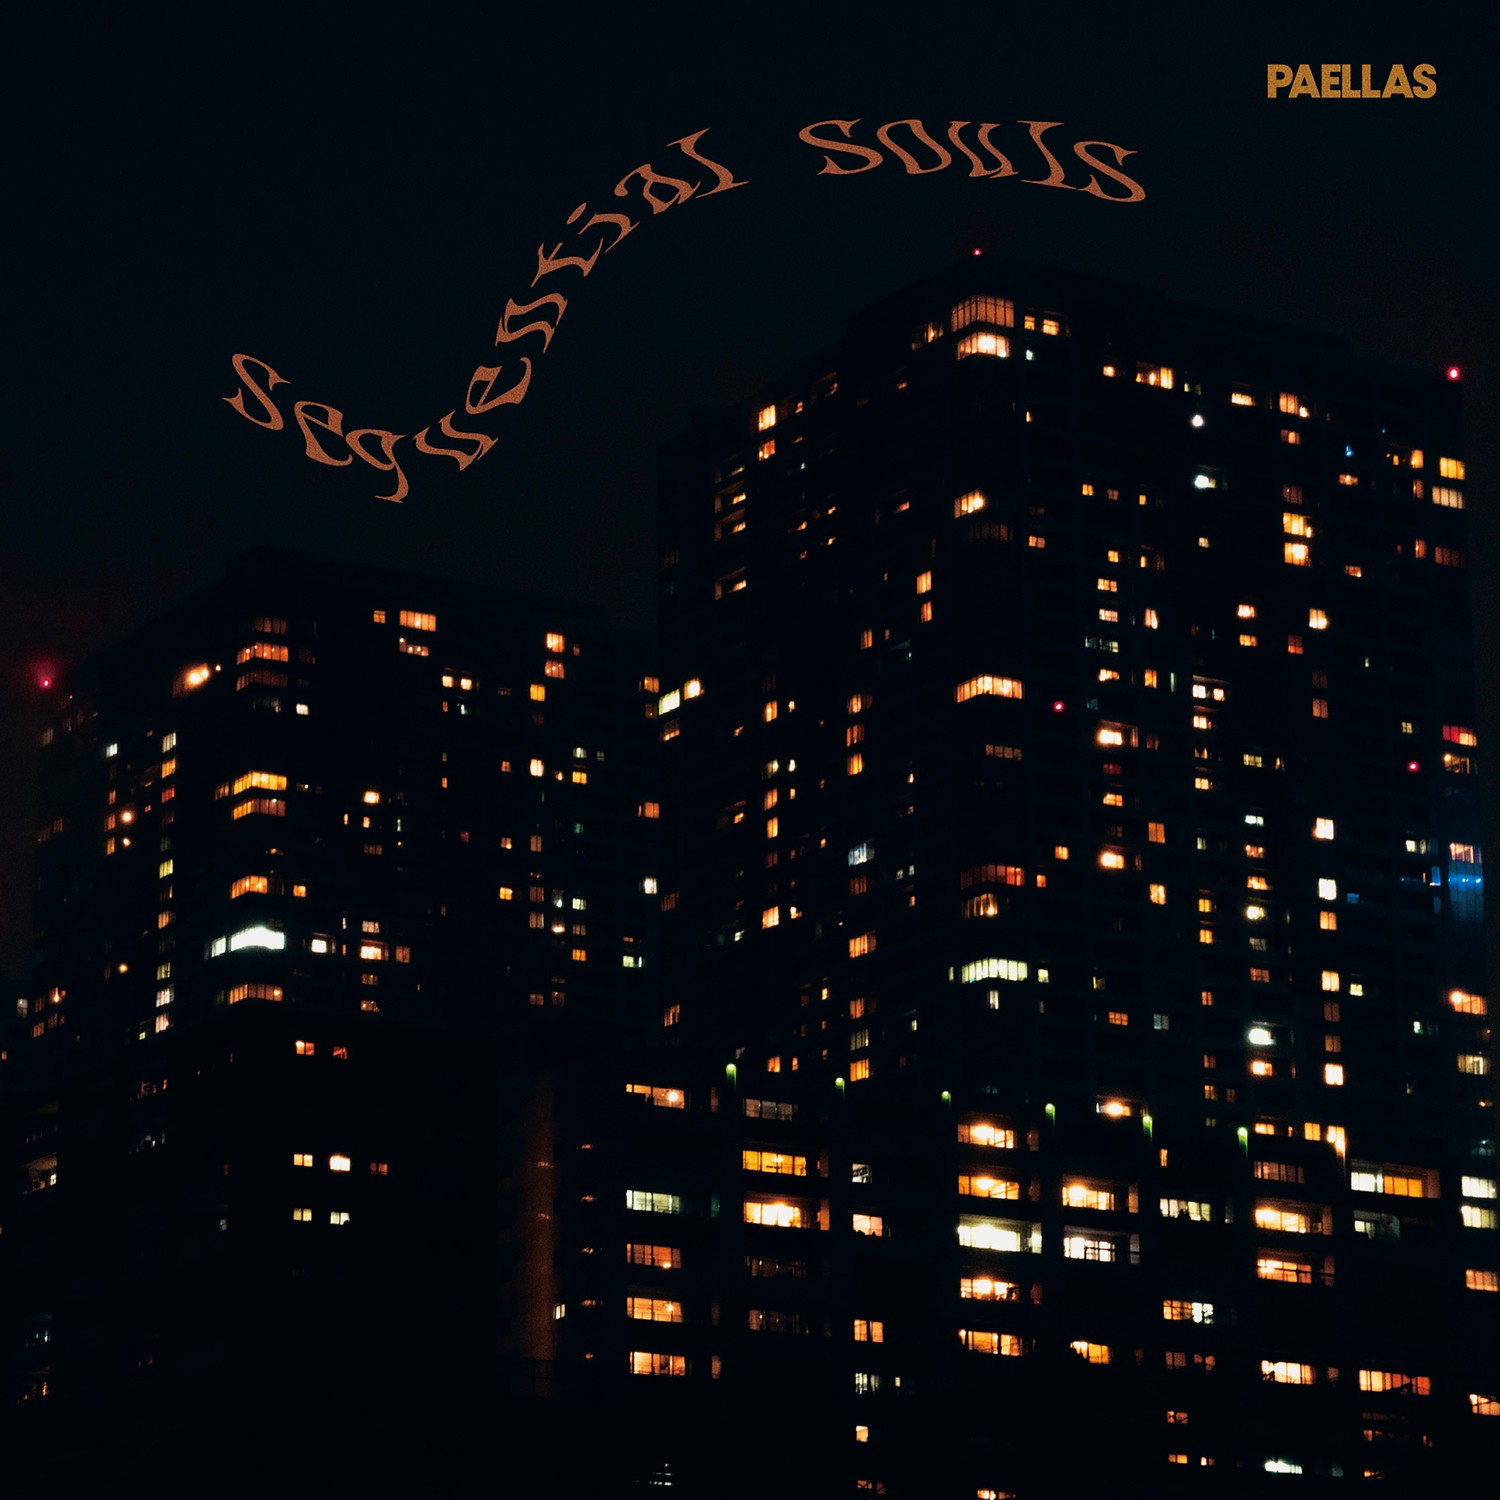 PAELLAS – sequential souls [FLAC + MP3 320 / WEB] [2019.06.05]